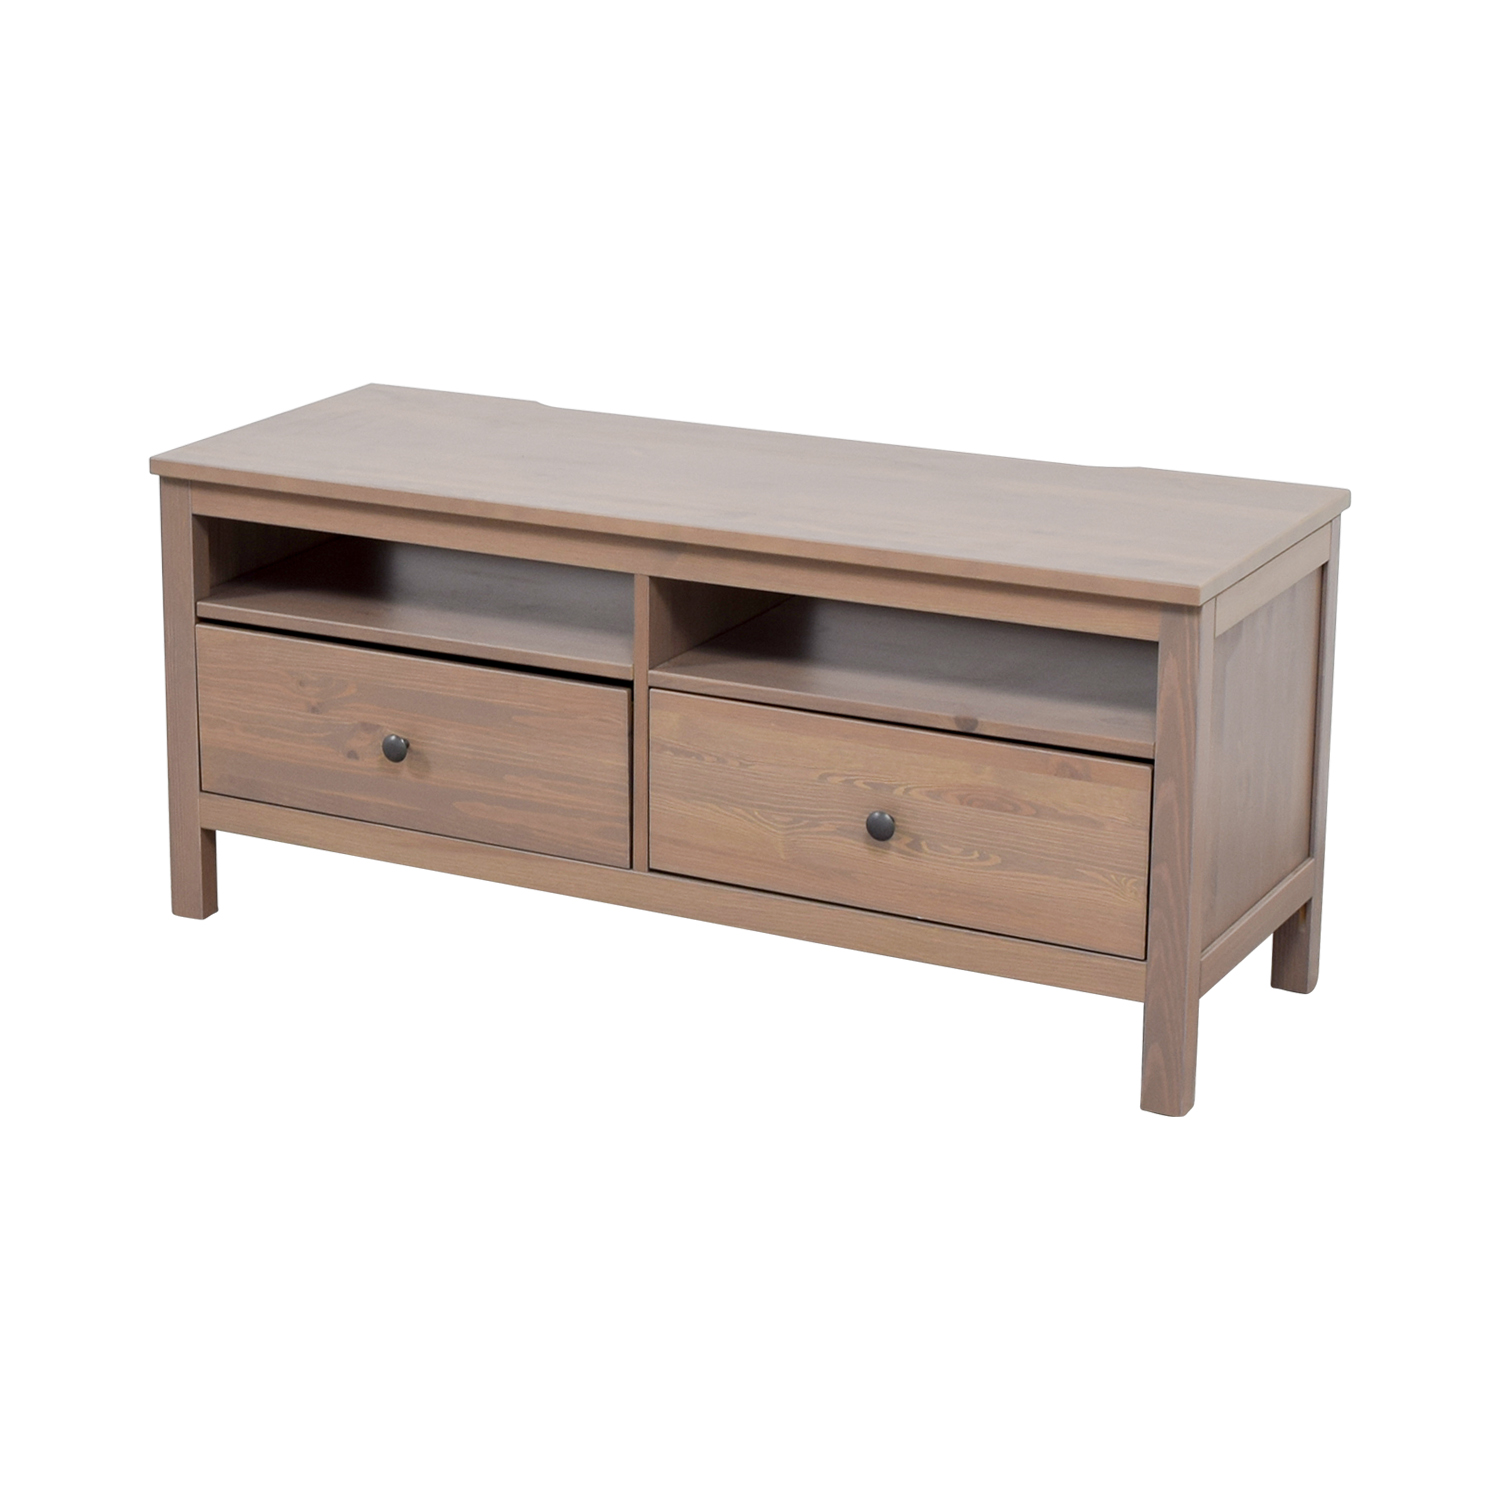 IKEA IKEA Two-Drawer TV Stand on sale